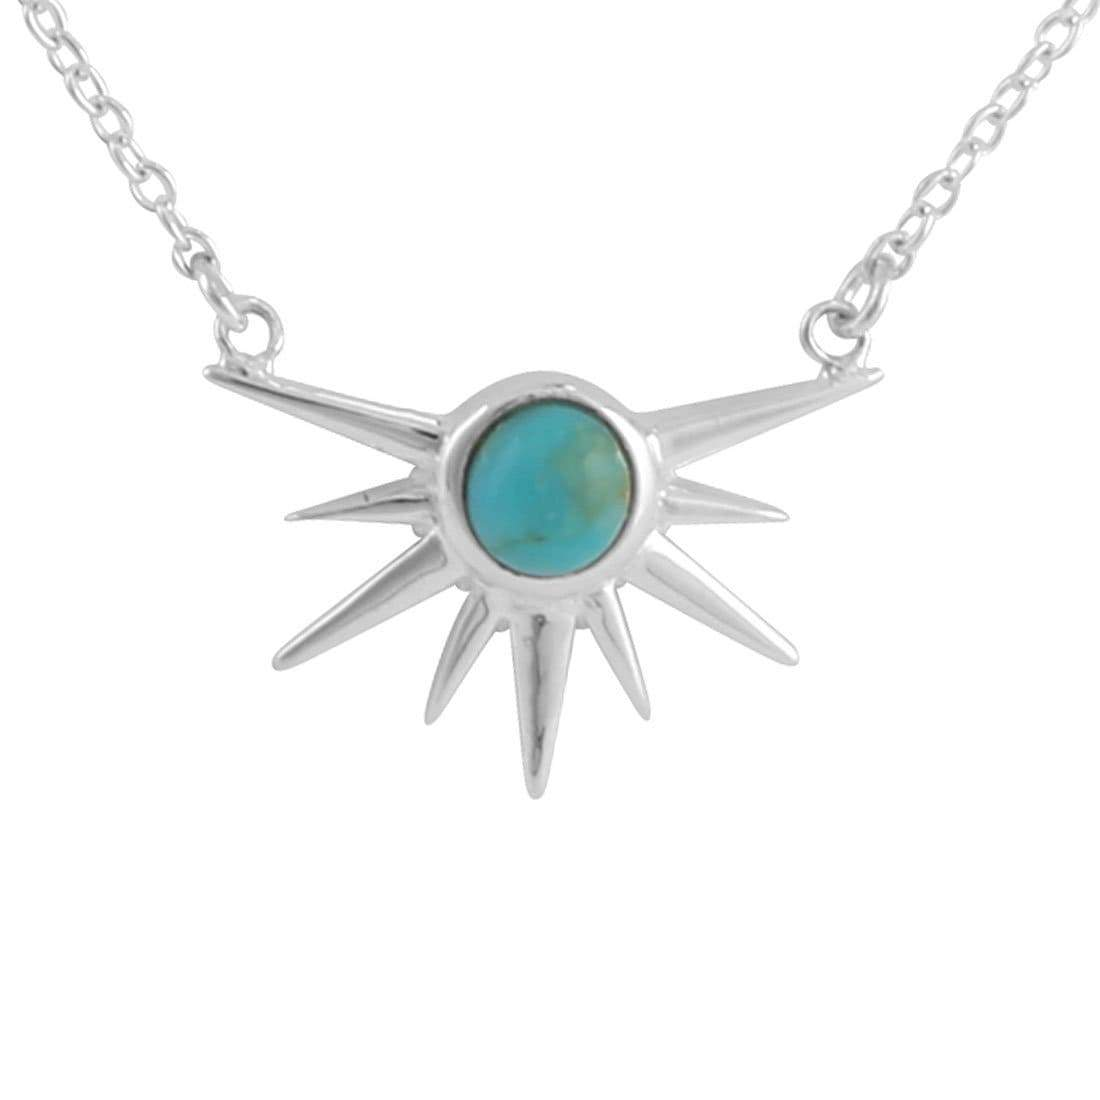 Midsummer Star Necklaces Sun Spire Turquoise Necklace